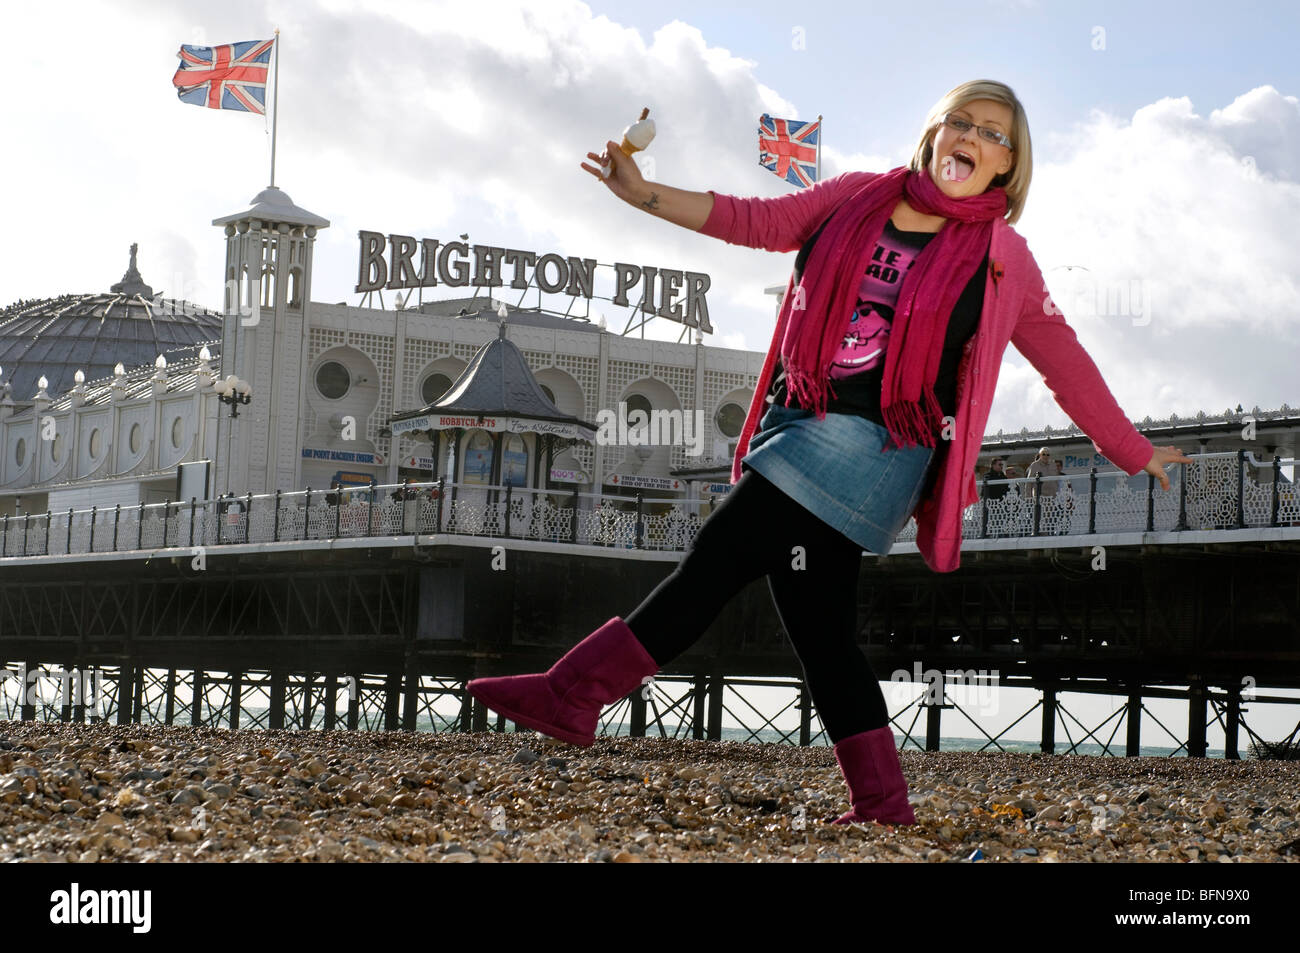 Girl with ice cream cone in front of Brighton pier. - Stock Image